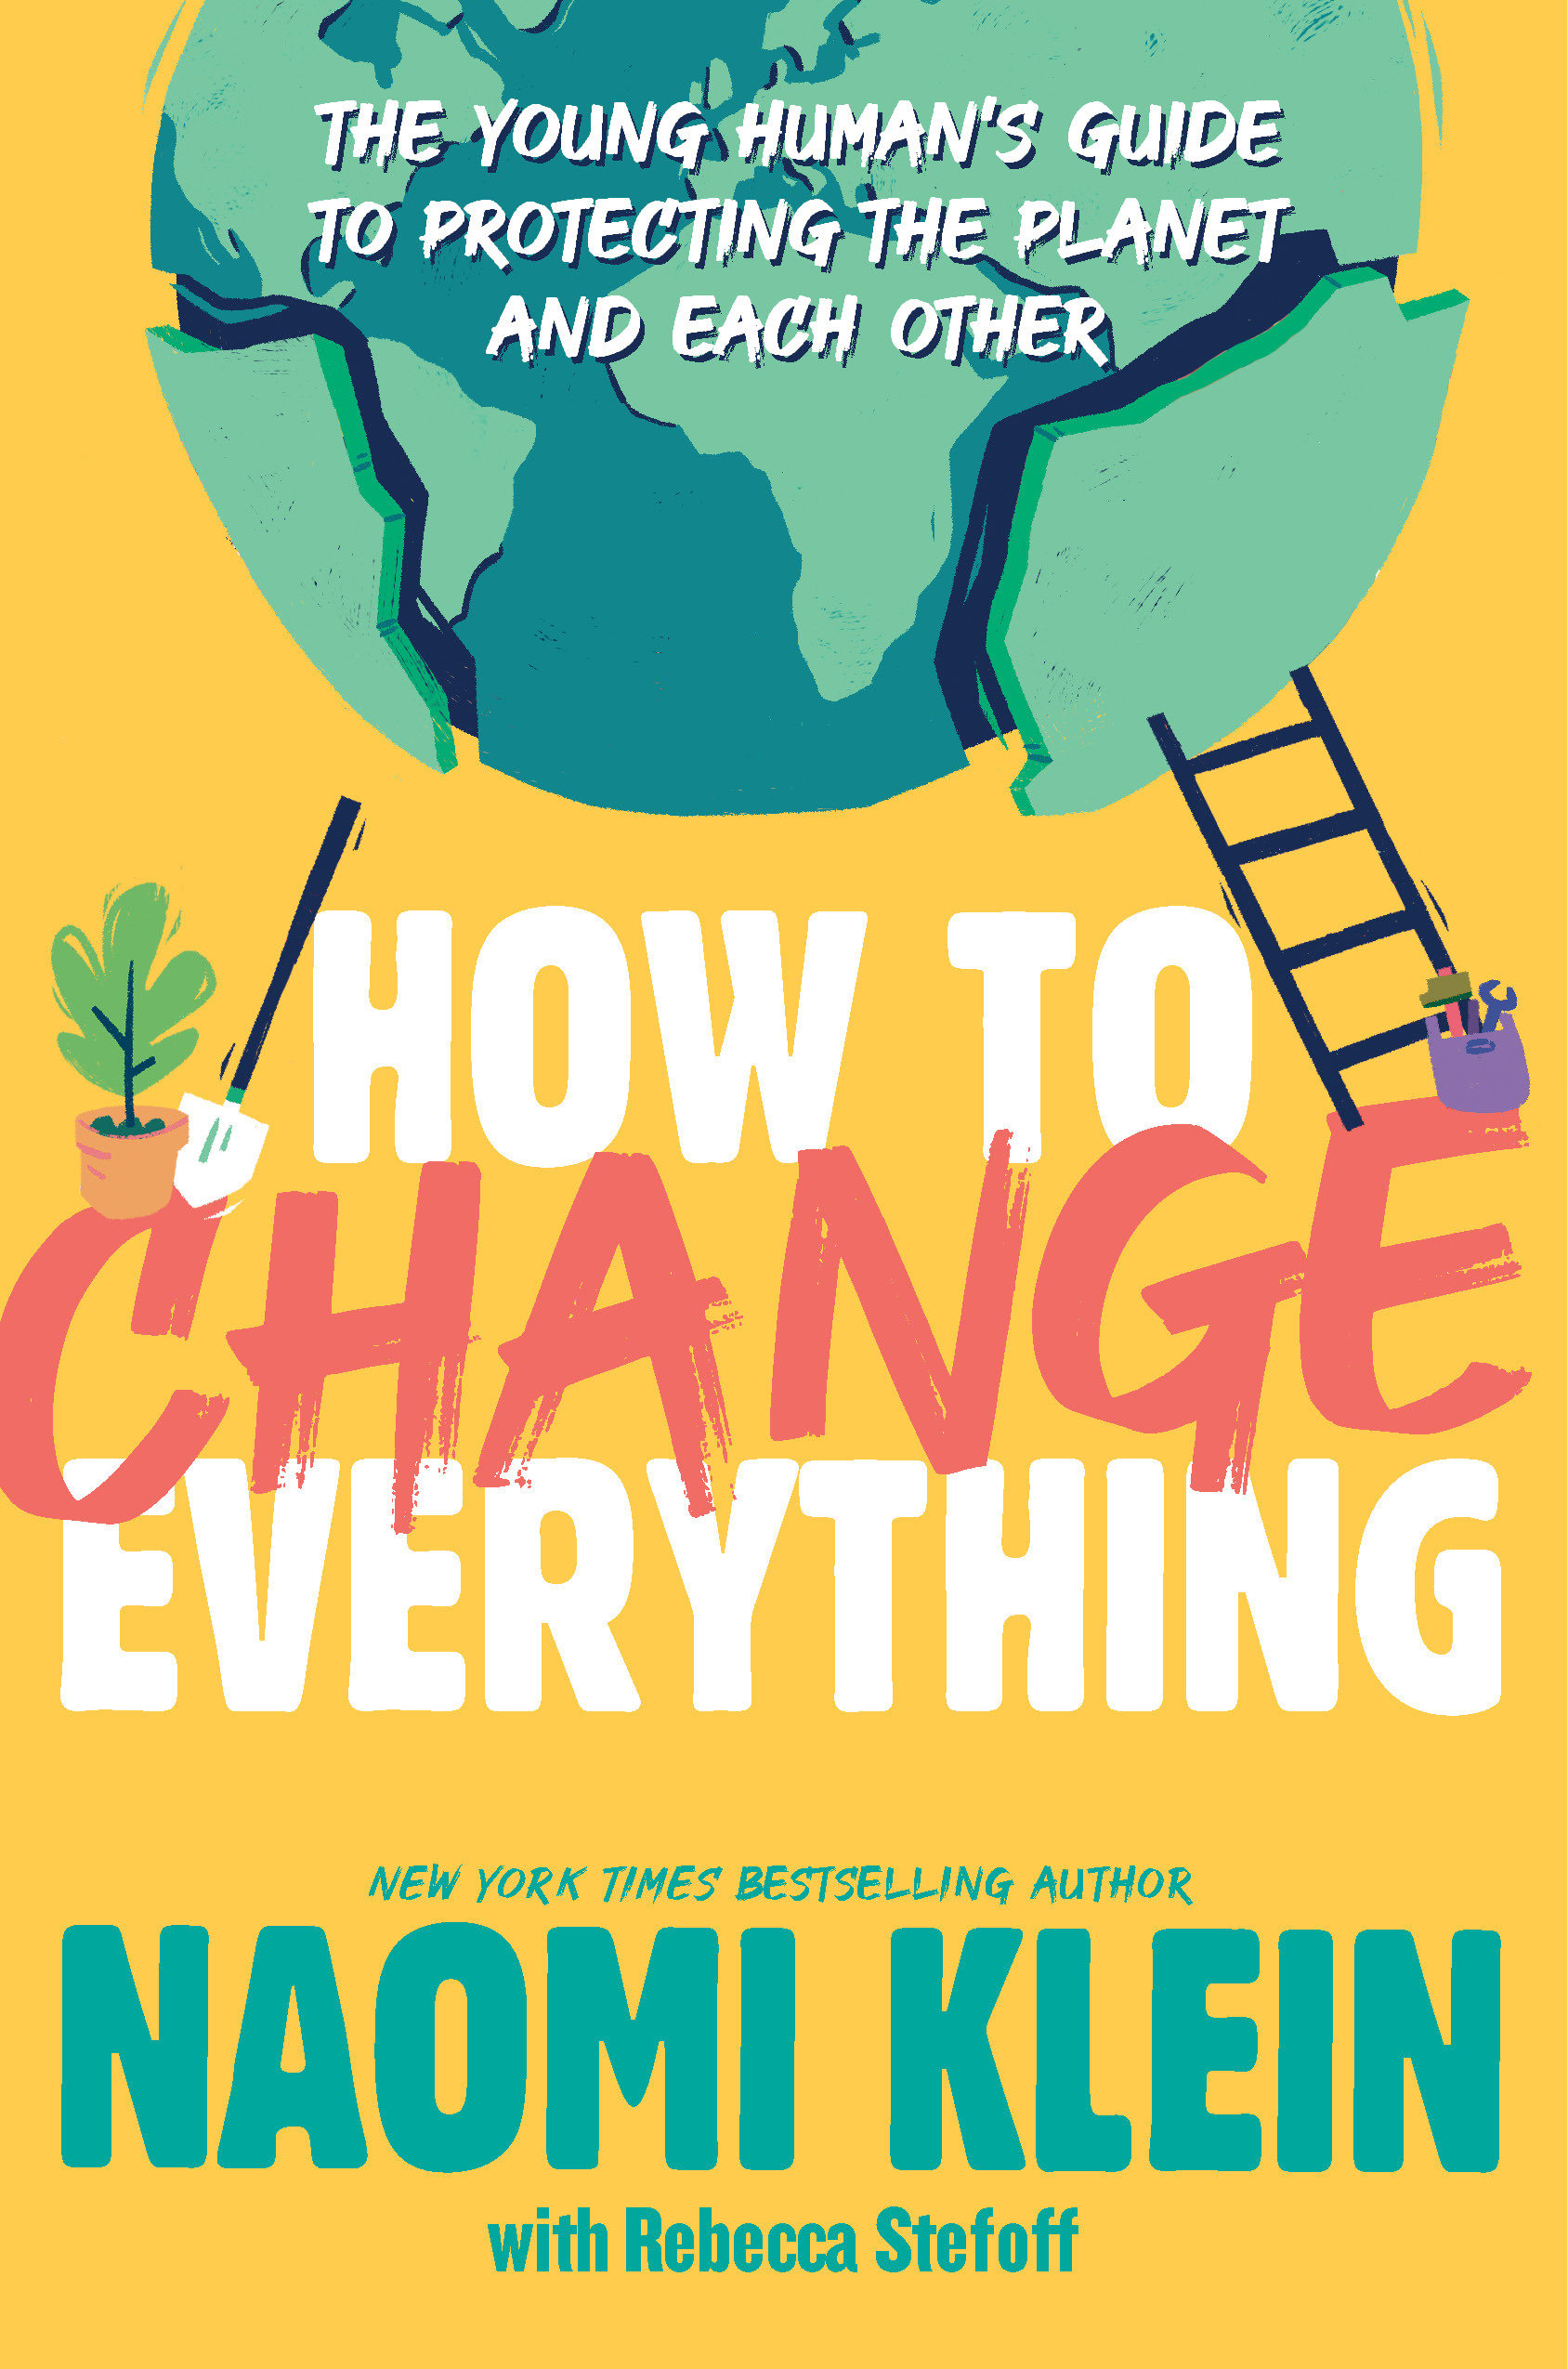 How To Change Everything